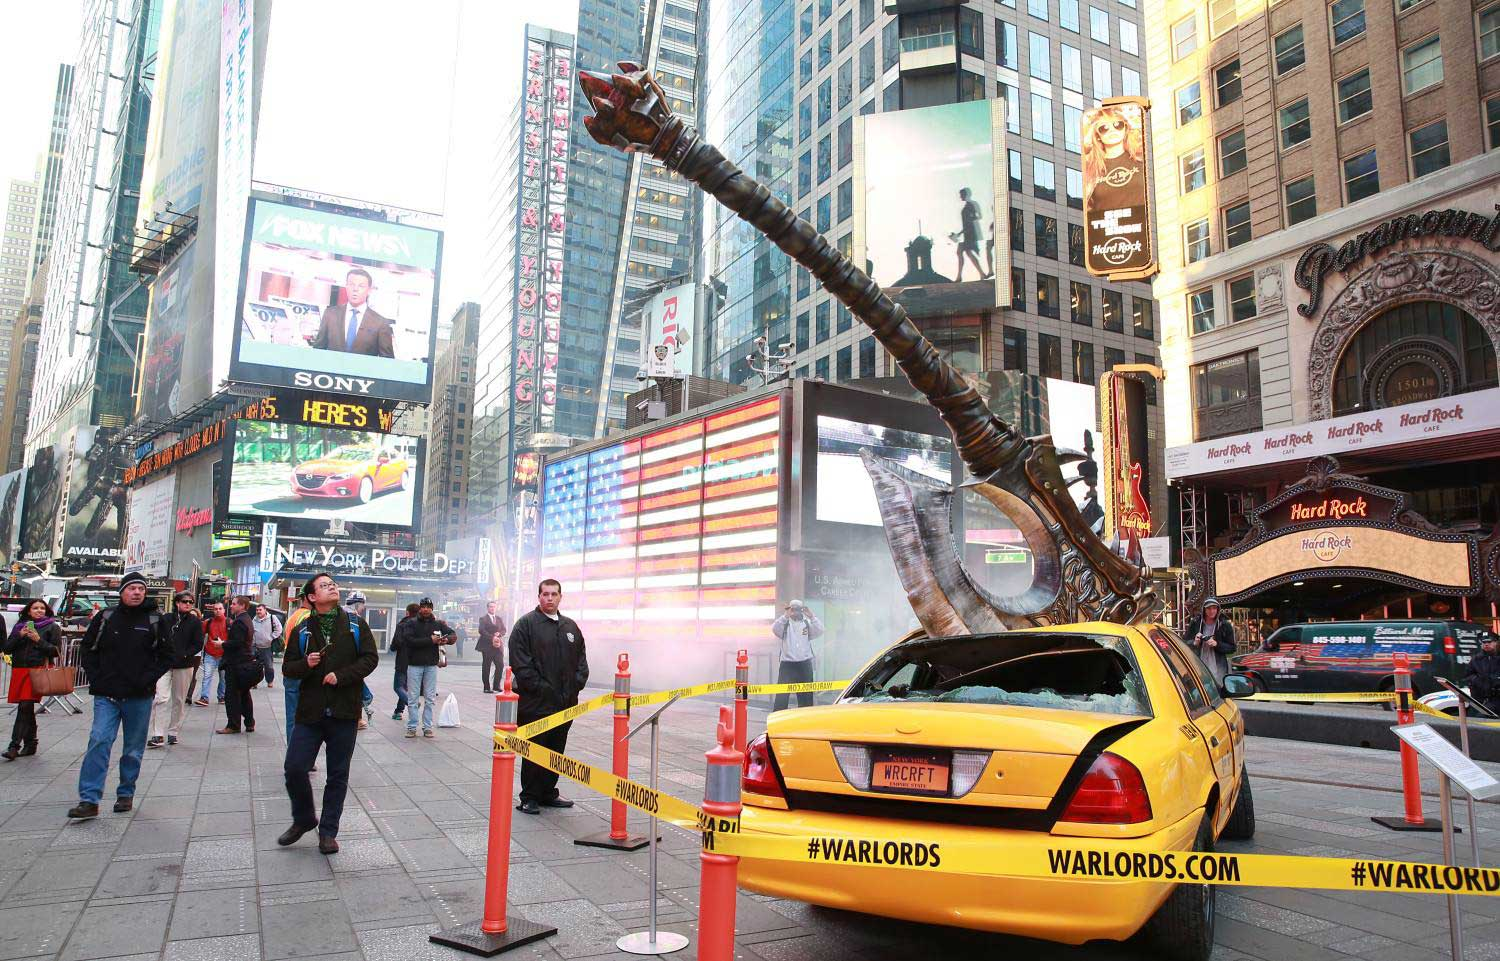 Warlords Of Draenor Launch Inspires Cool Times Square